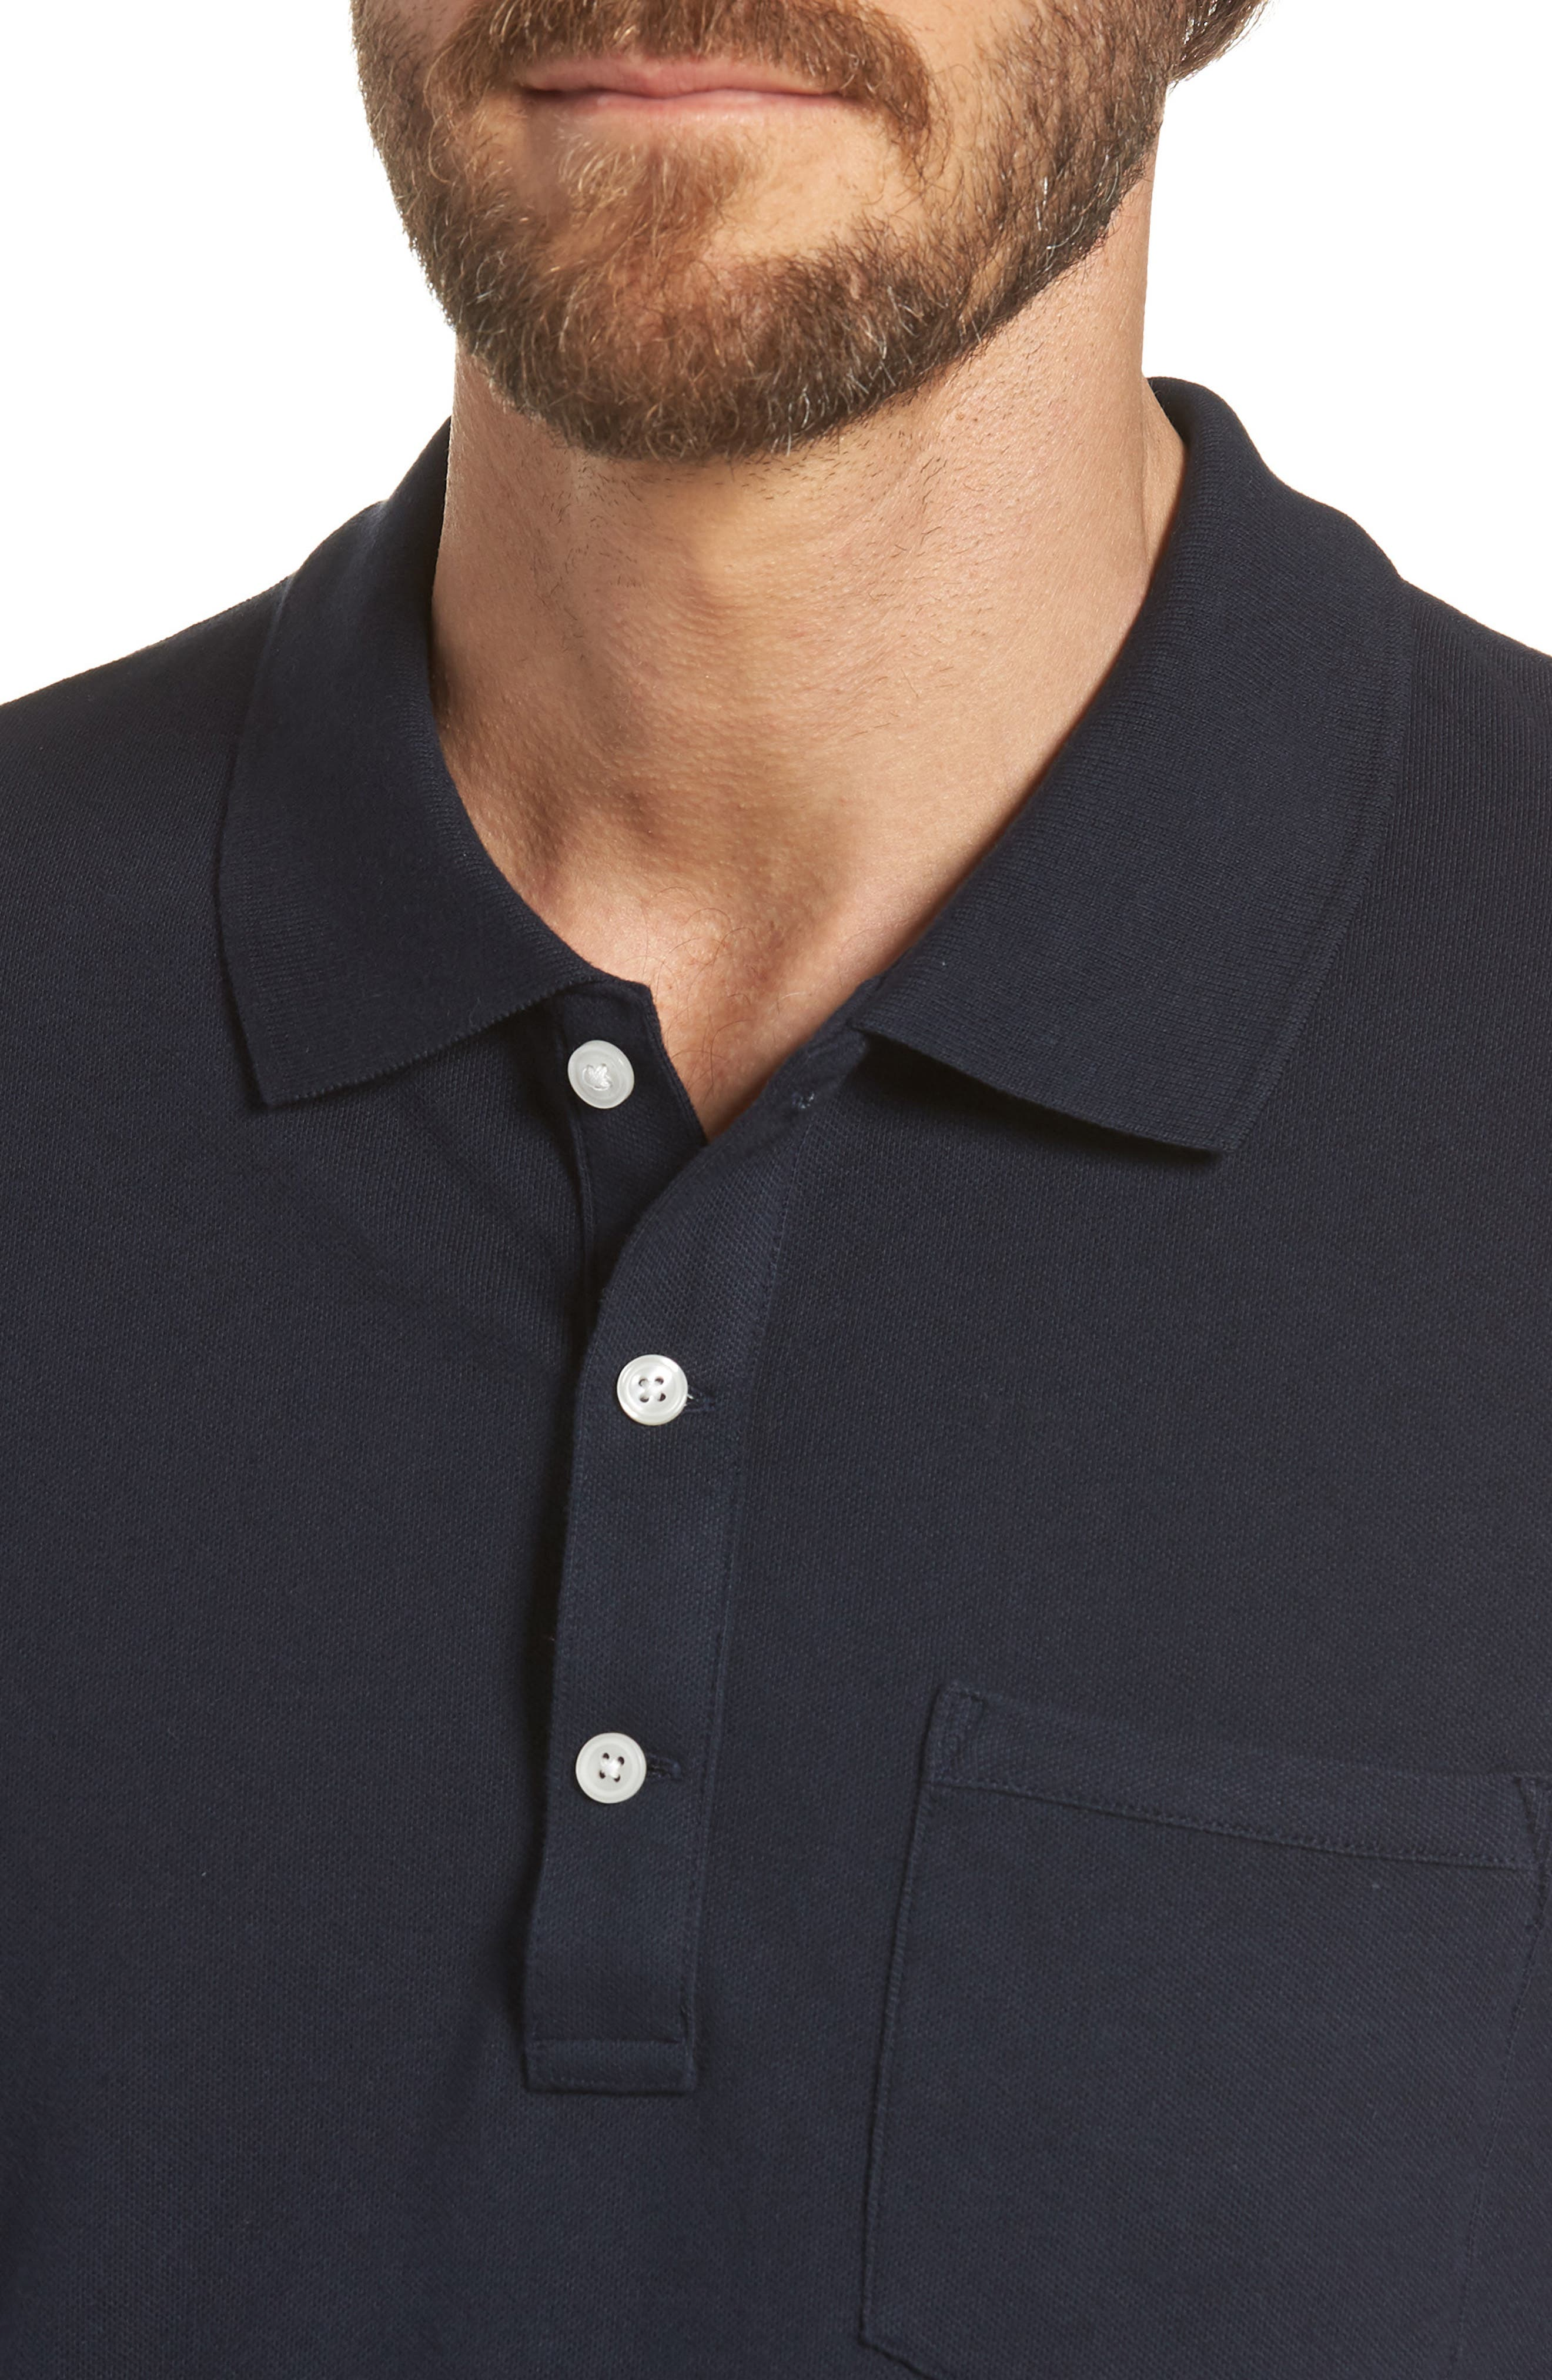 Stretch Cotton Polo Shirt,                             Alternate thumbnail 4, color,                             NAVY